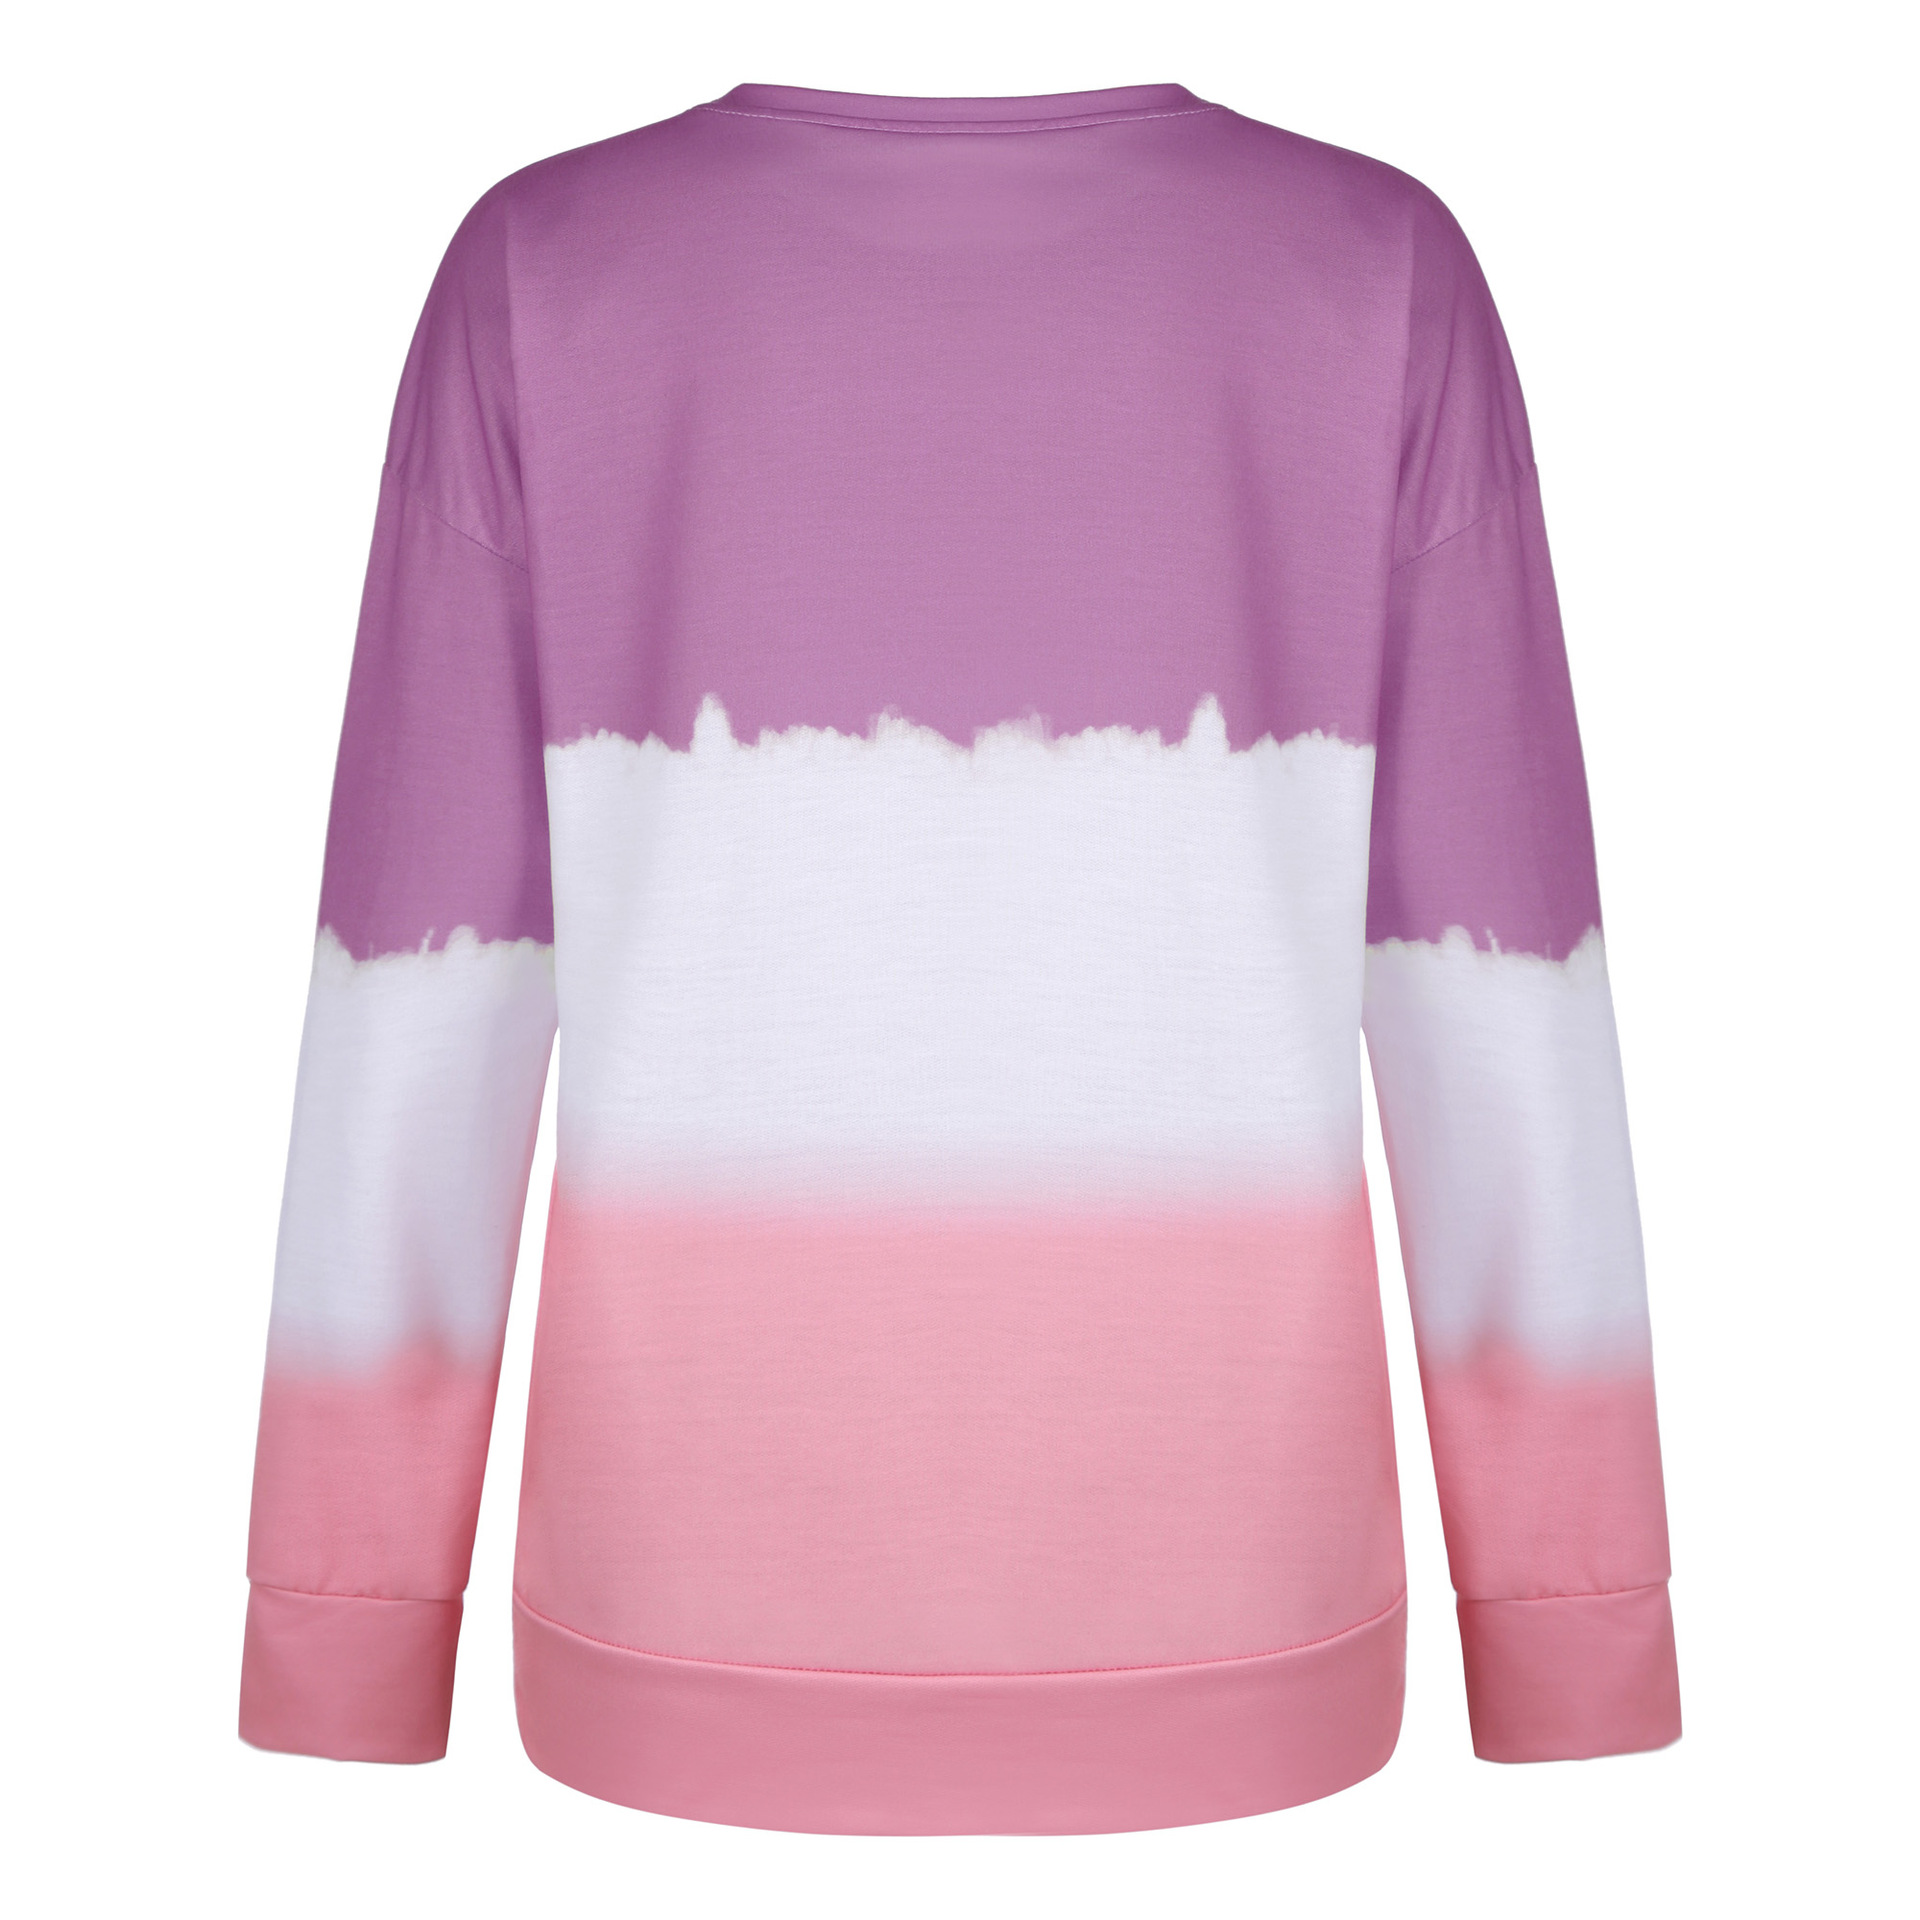 autumn and winter women's printed tie-dye gradient long-sleeved round neck T-shirt sweater NSYD3674